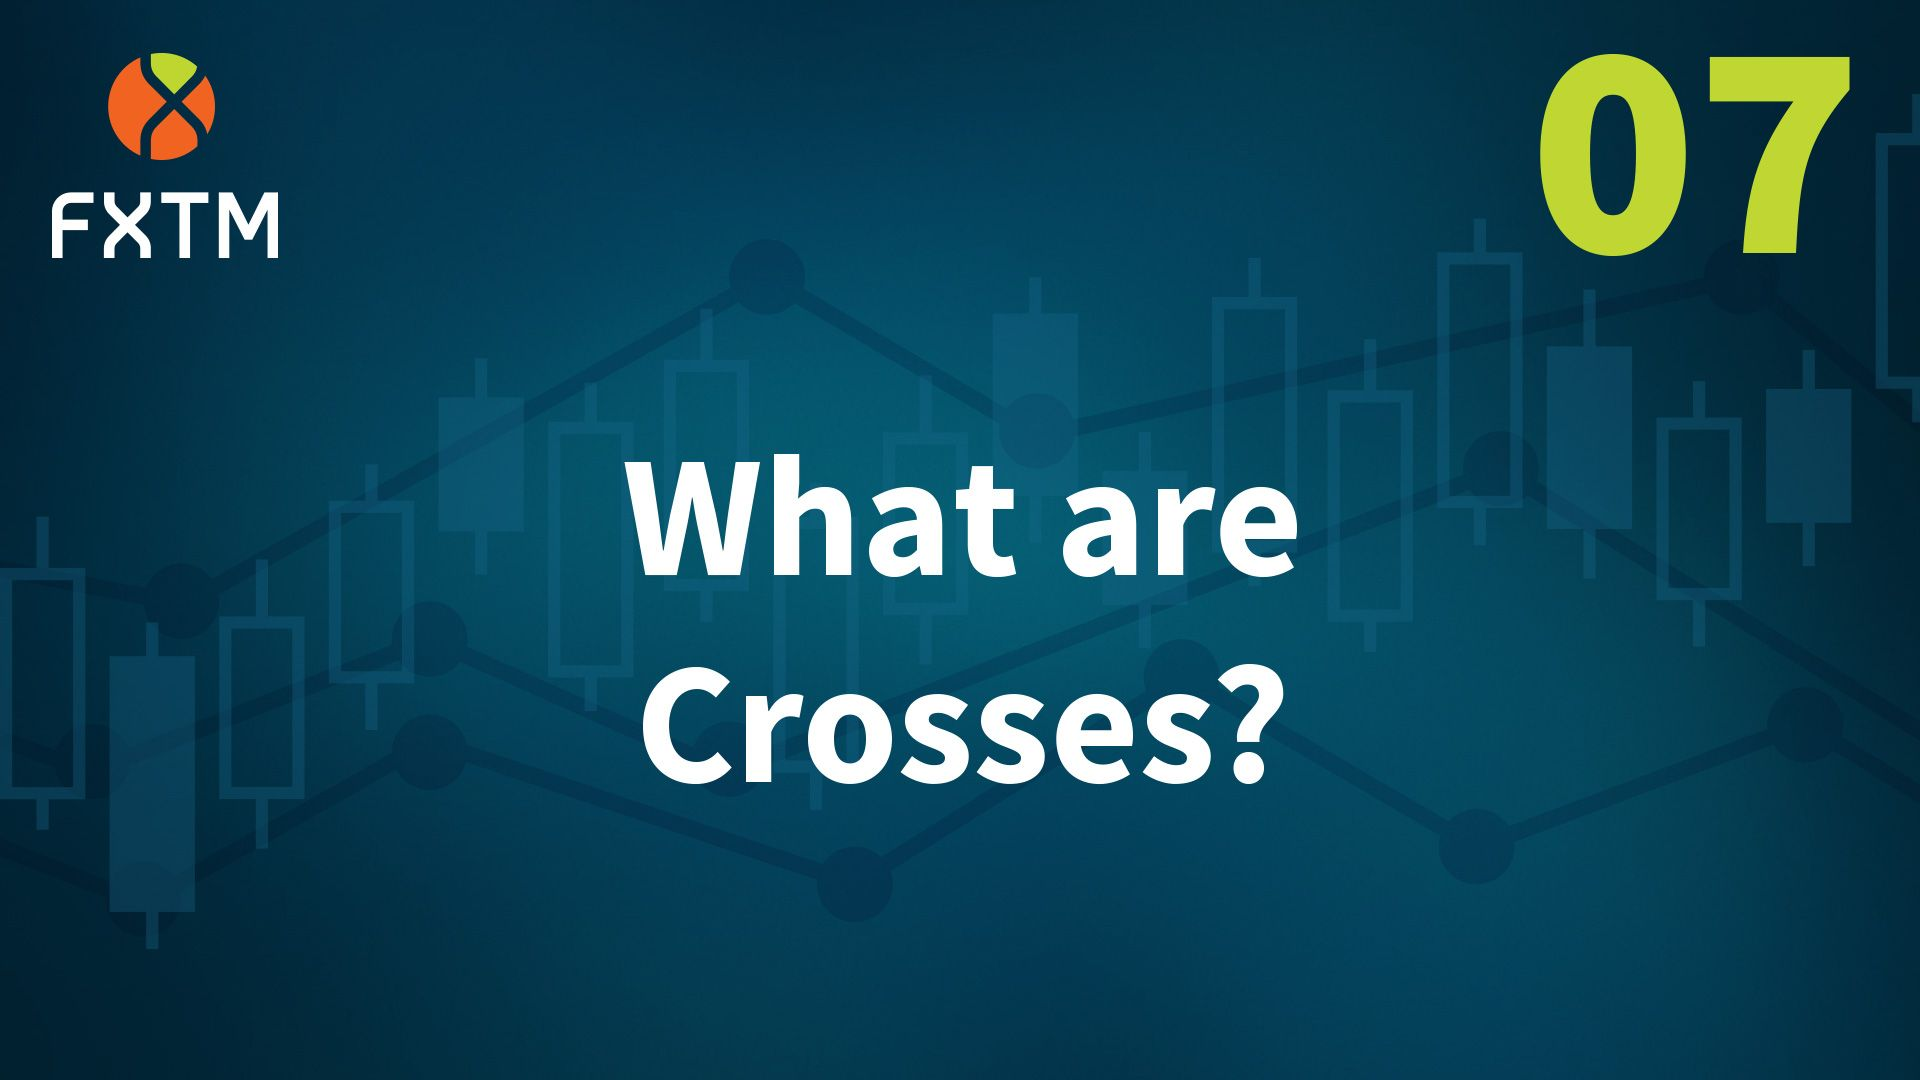 What are Crosses?